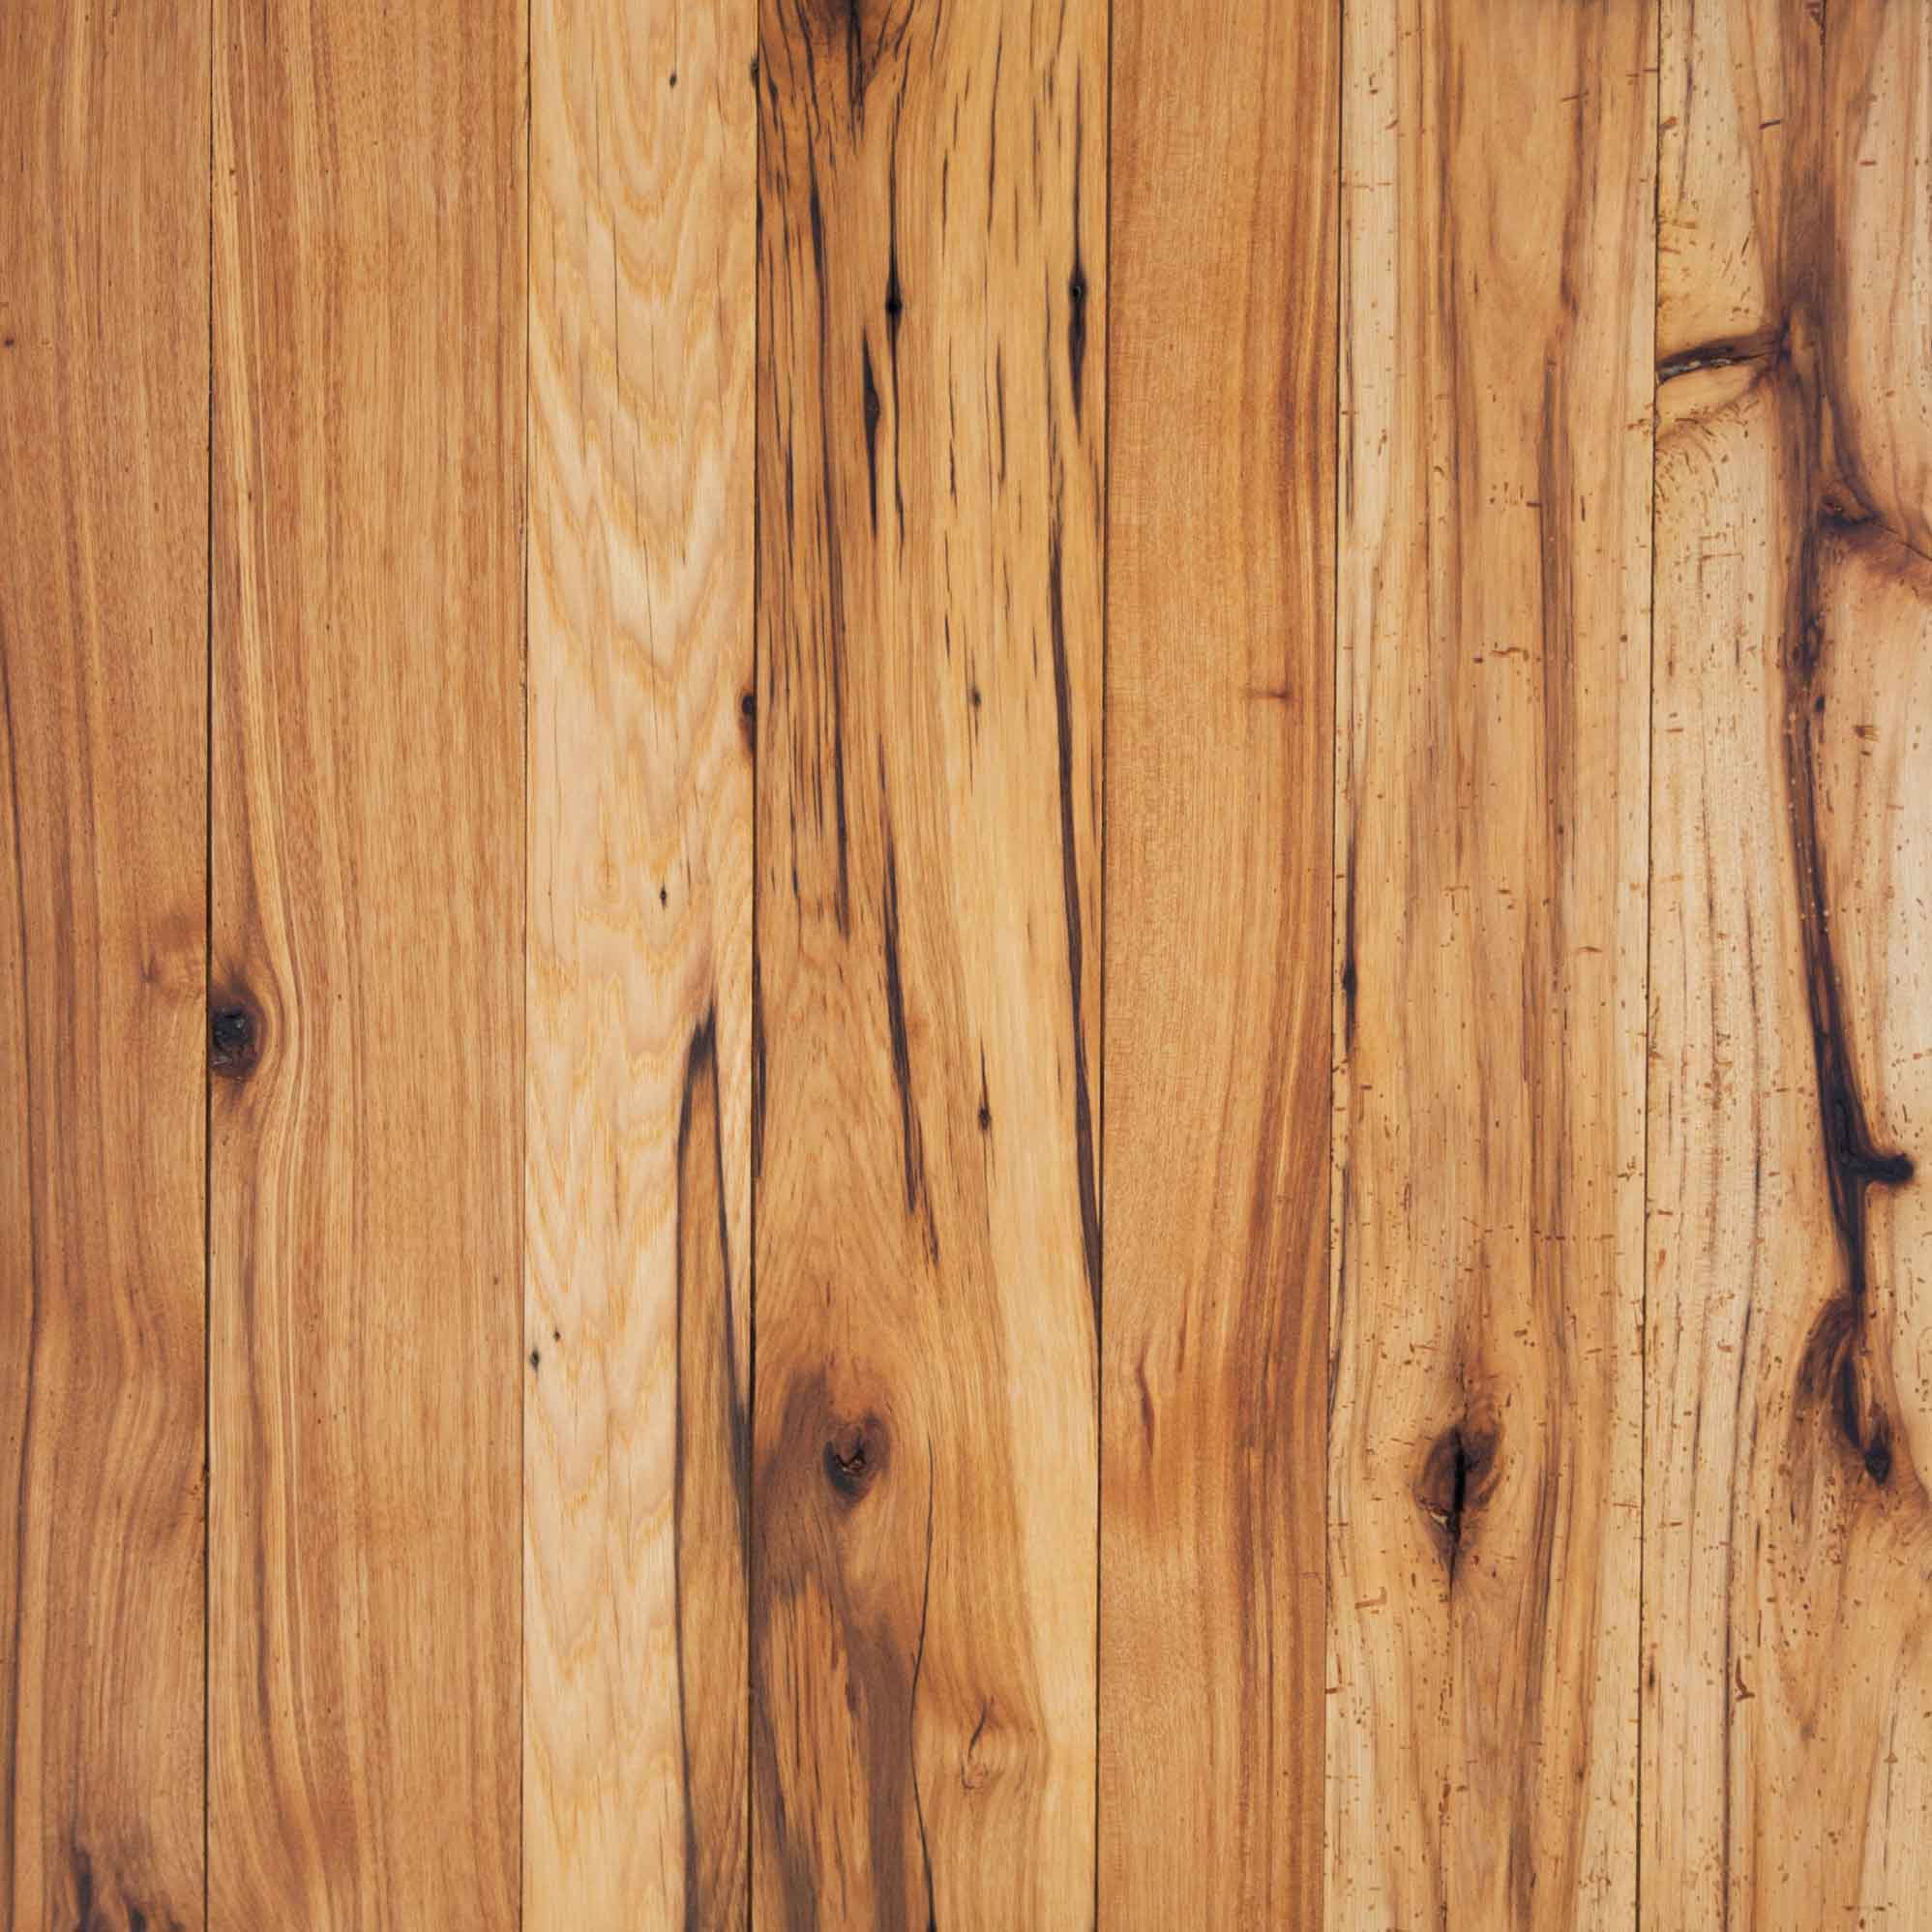 Longleaf lumber reclaimed hickory flooring Reclaimed woods